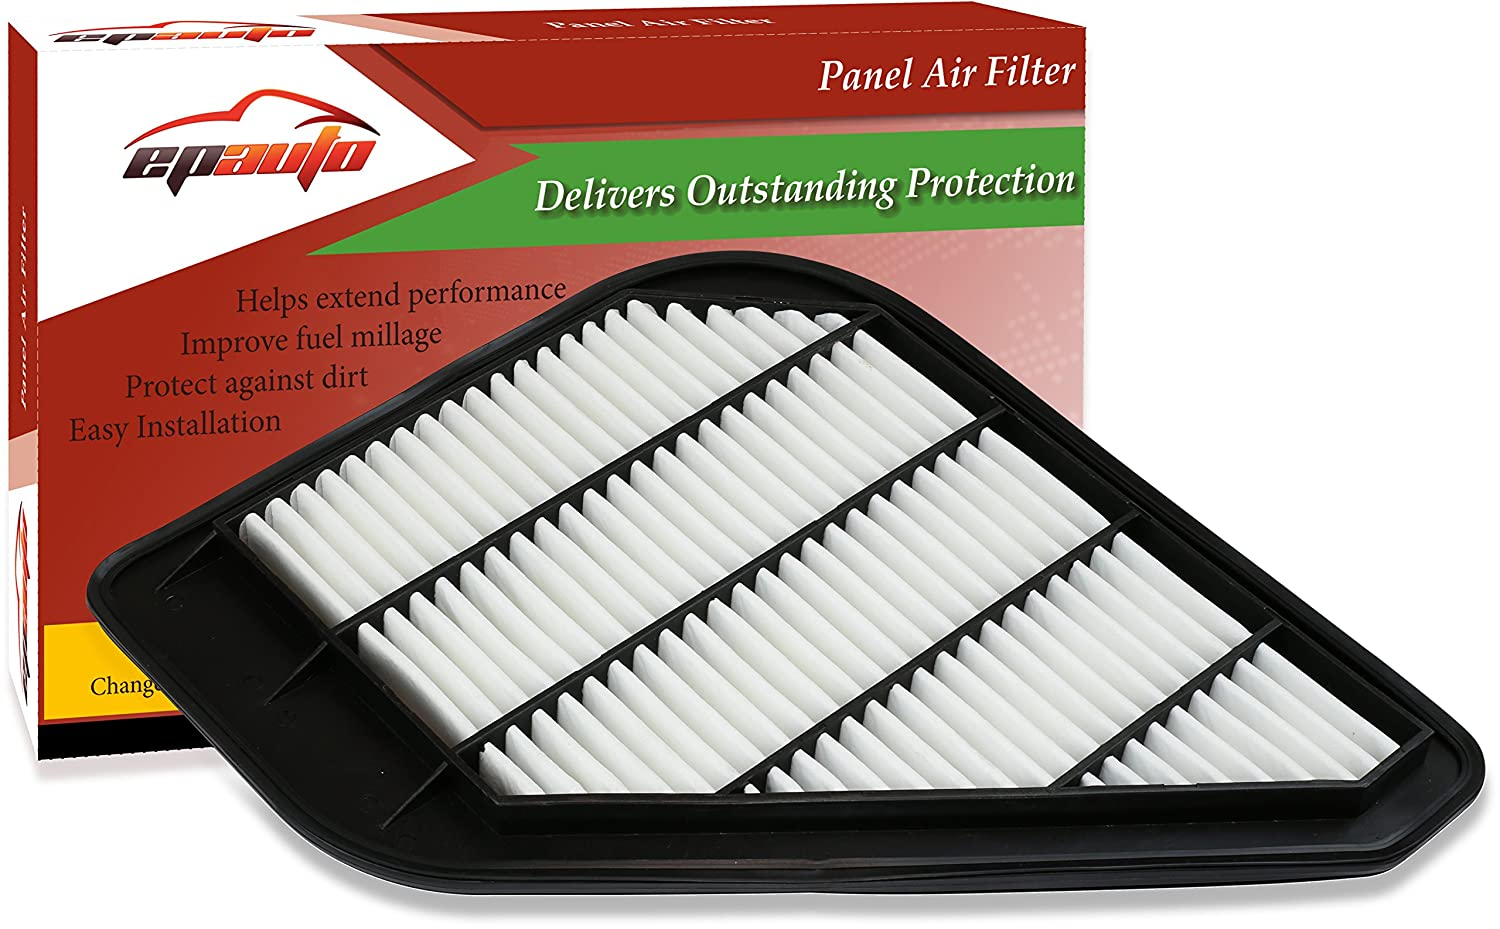 EPAuto GP110 (CA10110) Replacement for Chevrolet/GMC/Saturn/Buick Rigid Panel Engine Air Filter for Enclave (2008-2017), Traverse (2009-2017), Acadia (2007-2016), Outlook (2007-2010) FP-024-1